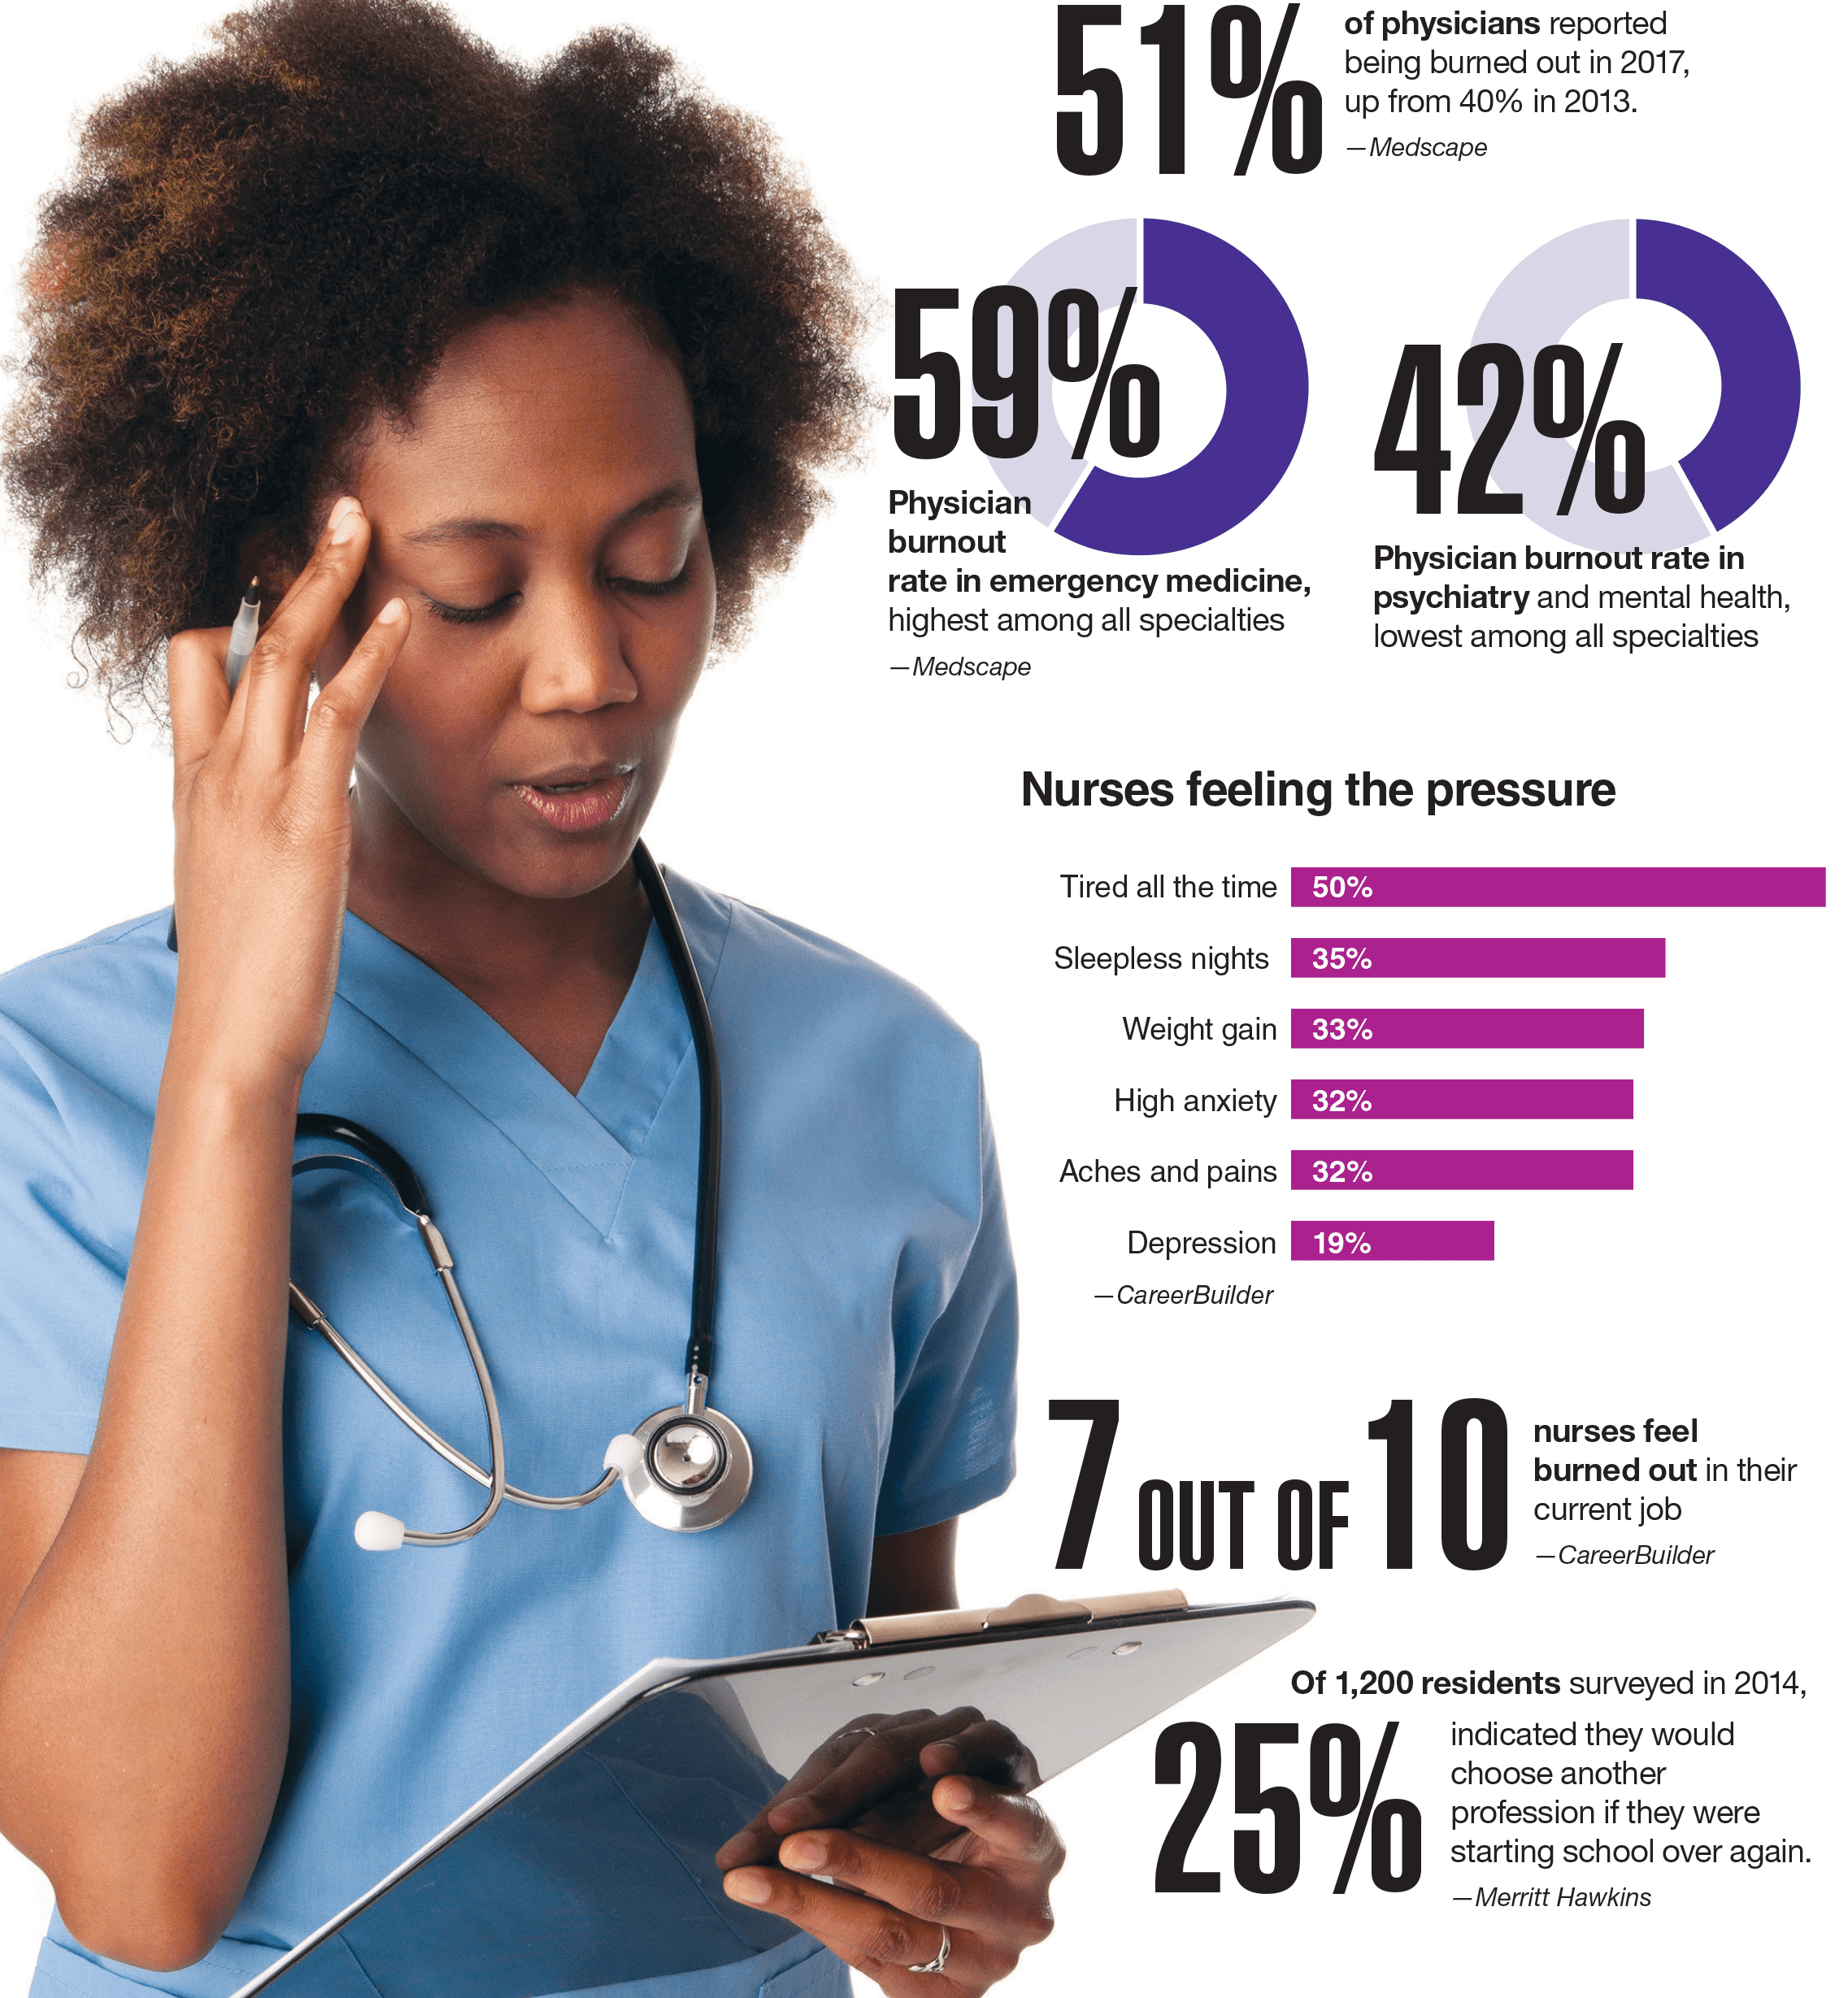 physician and nurse burnout